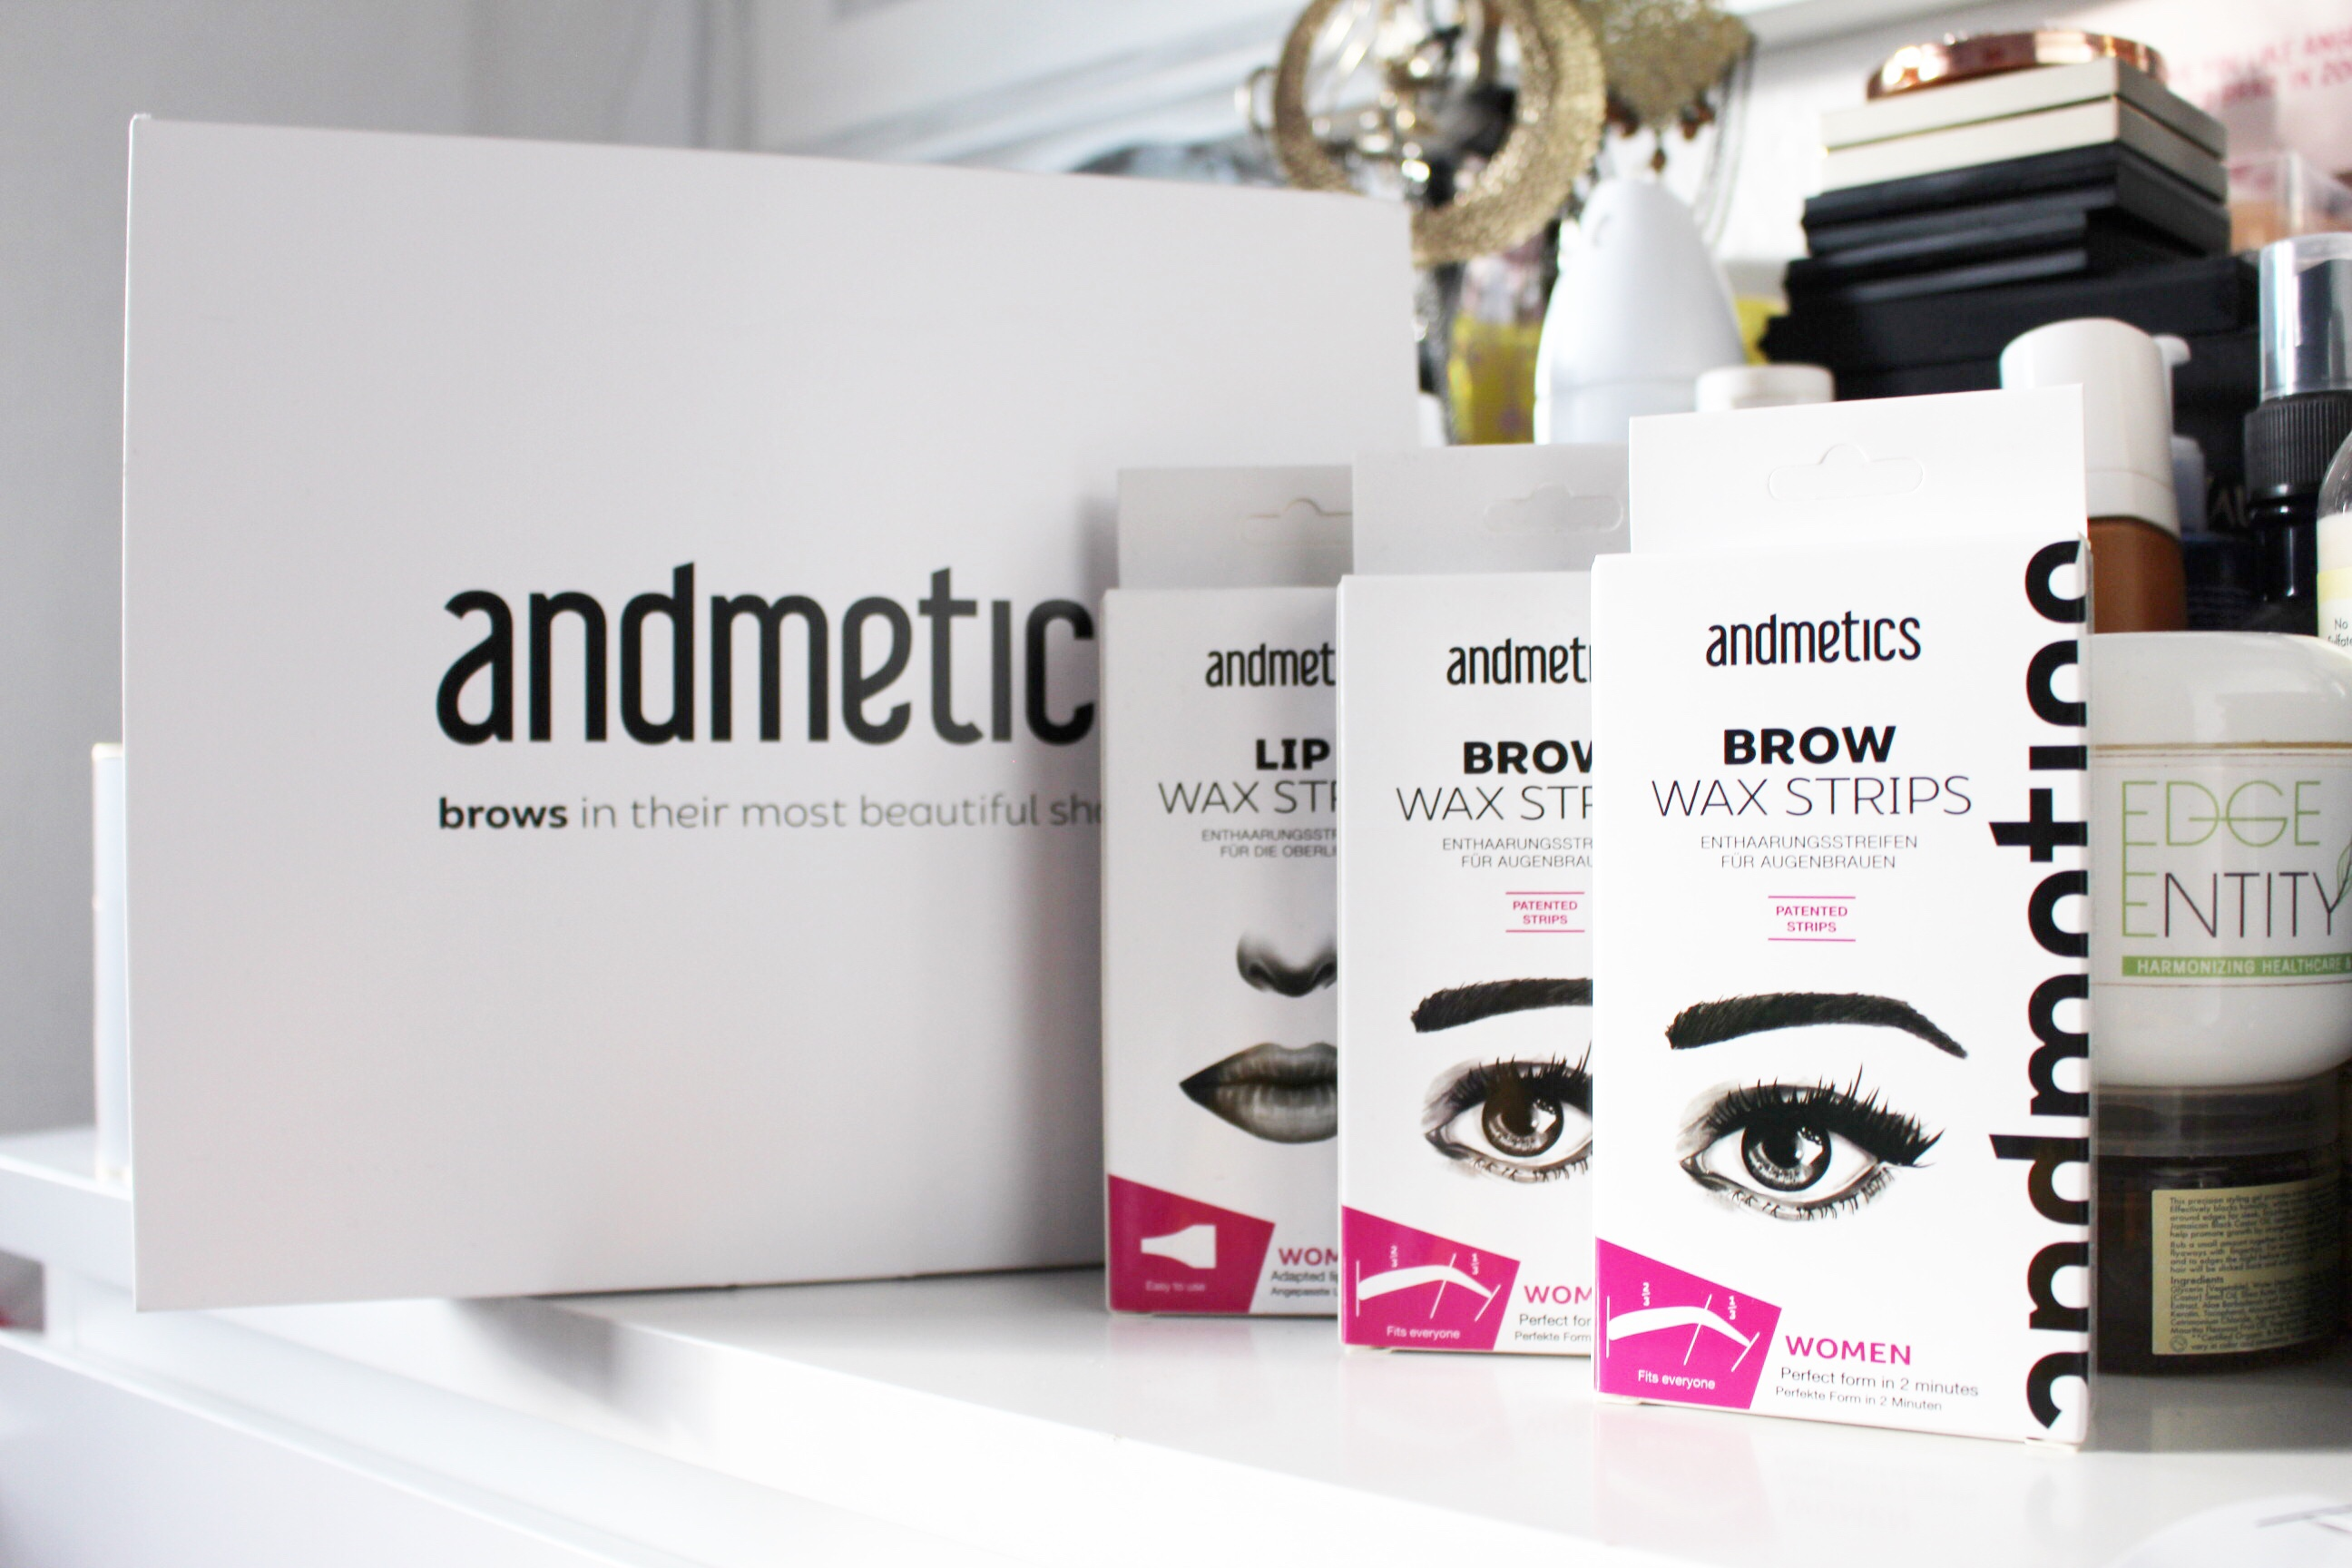 raychel-says-Christmas-gift-guide-andmetics-brow-lip-strips